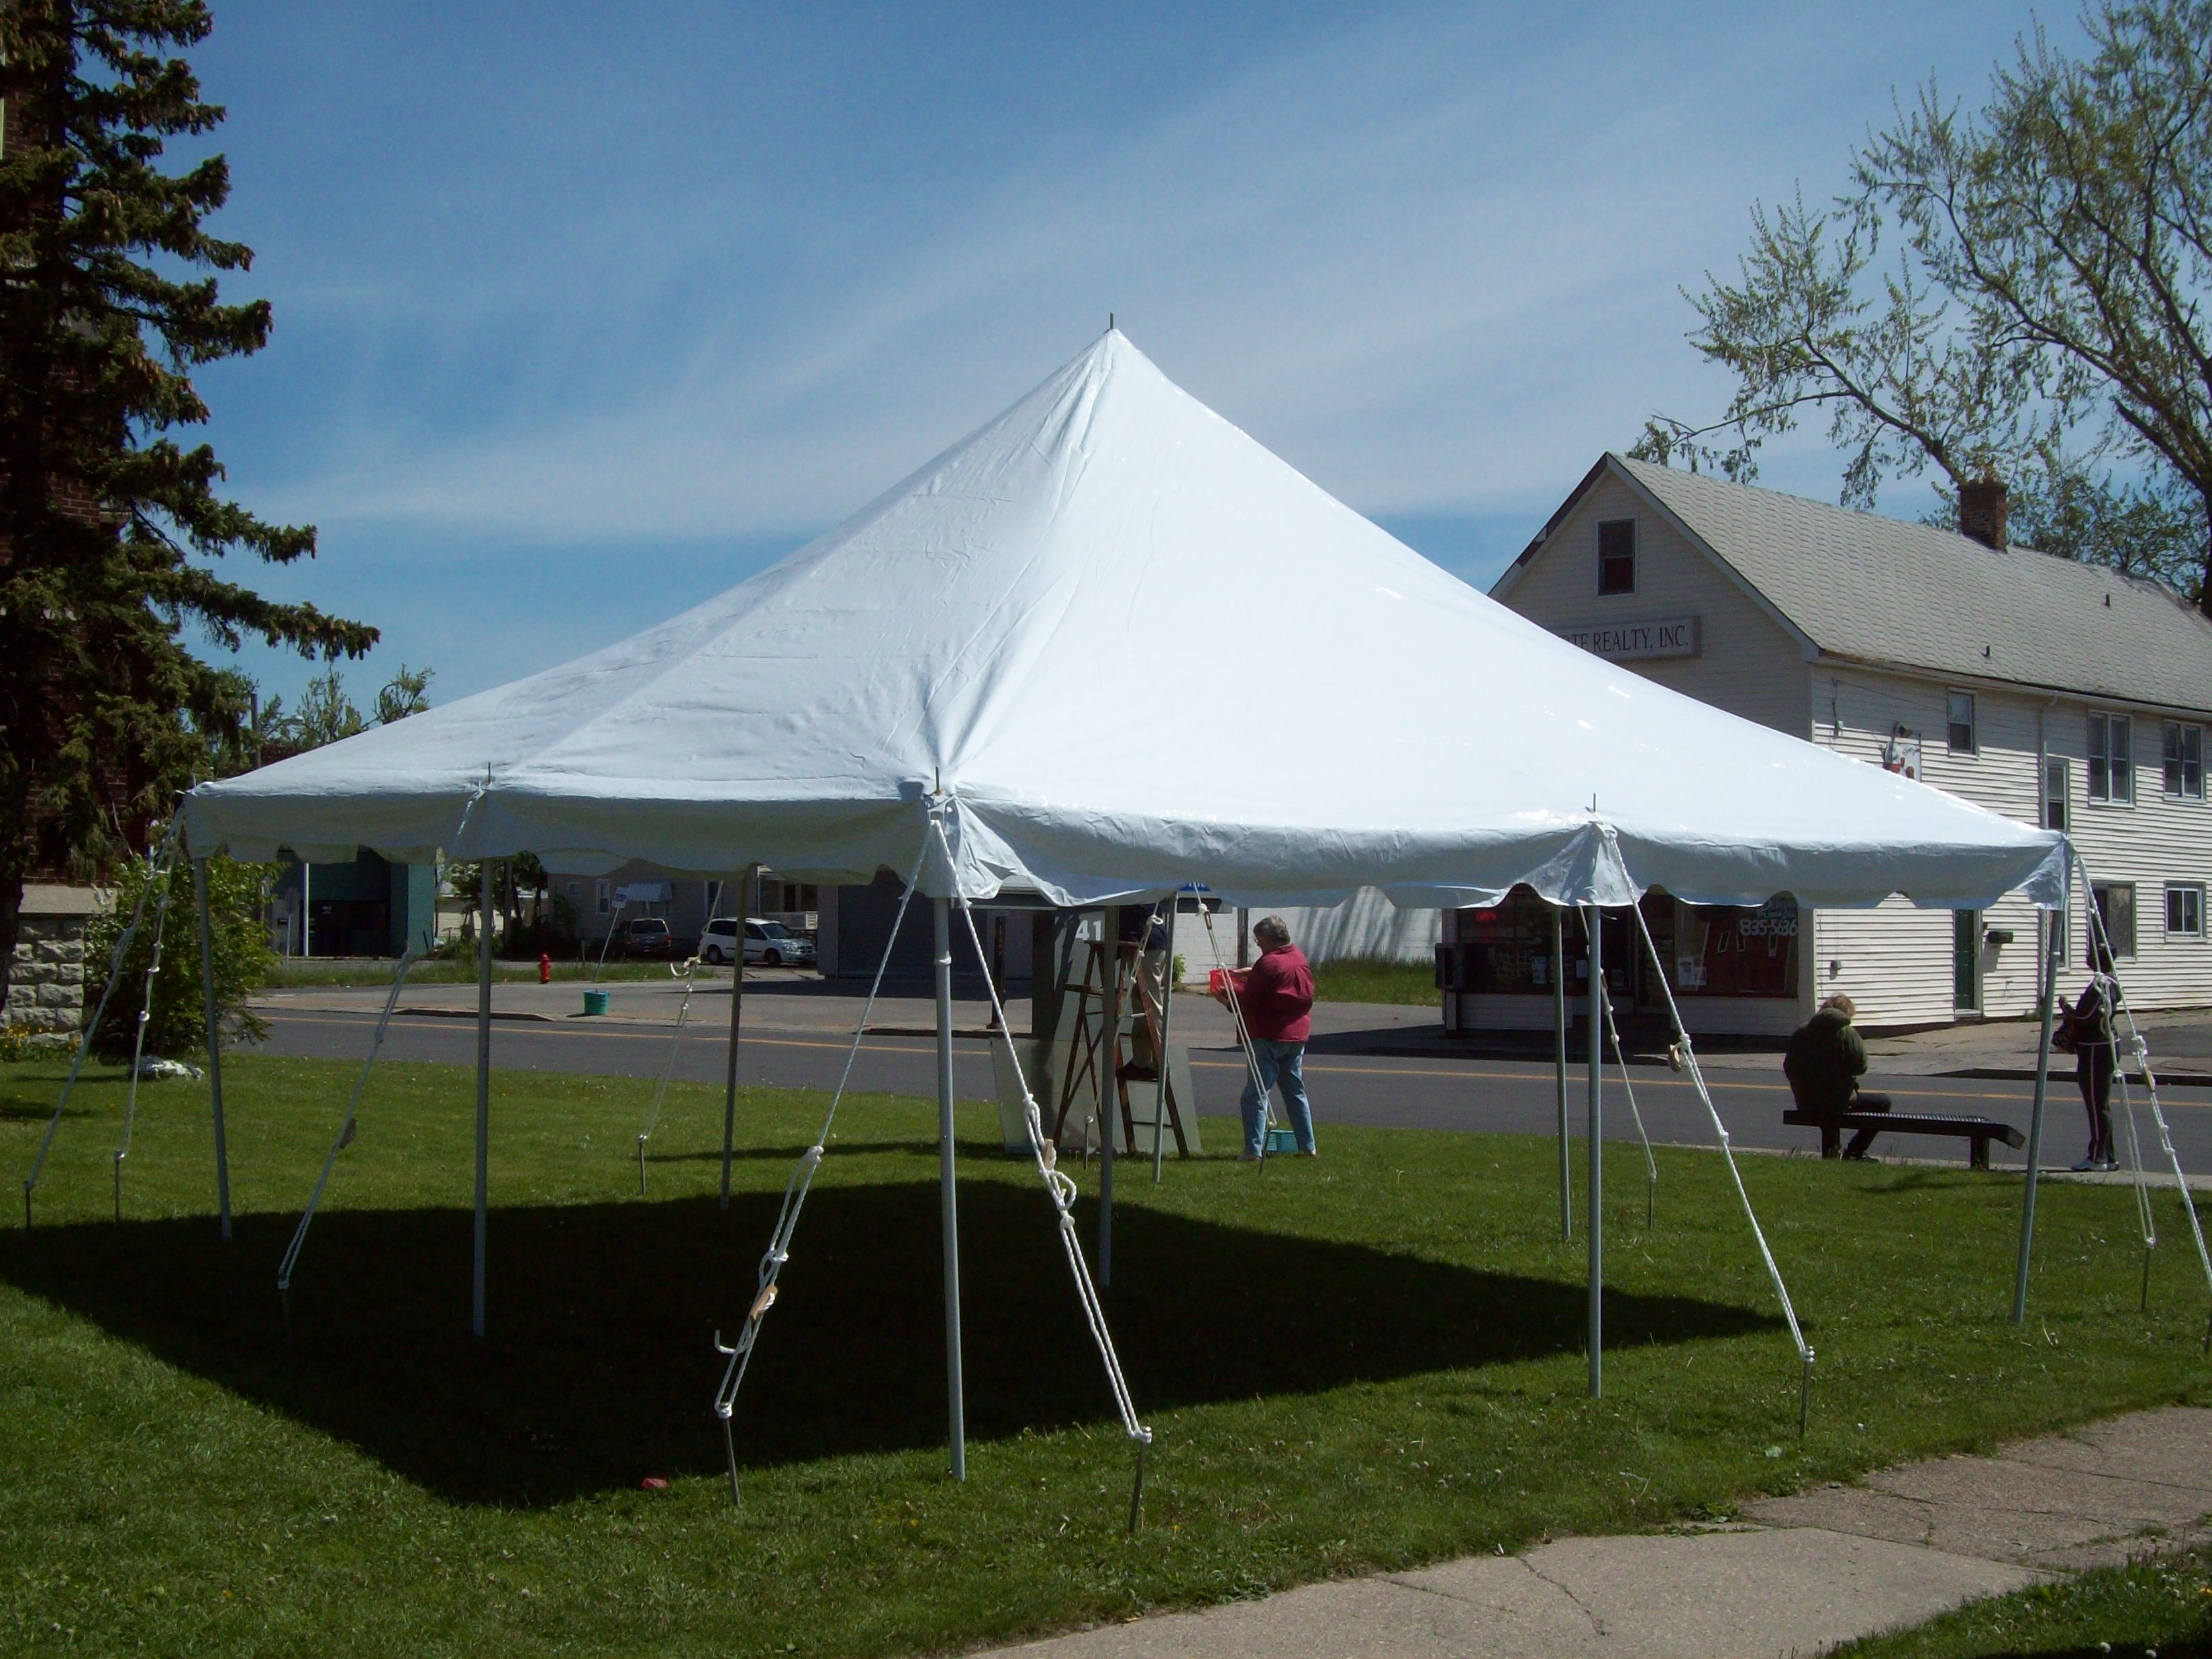 Canopy-Tent-Top-for-Commercial-Pole-Tent-16- & Canopy Tent Top for Commercial Pole Tent 16 oz Vinyl TOP ONLY ...